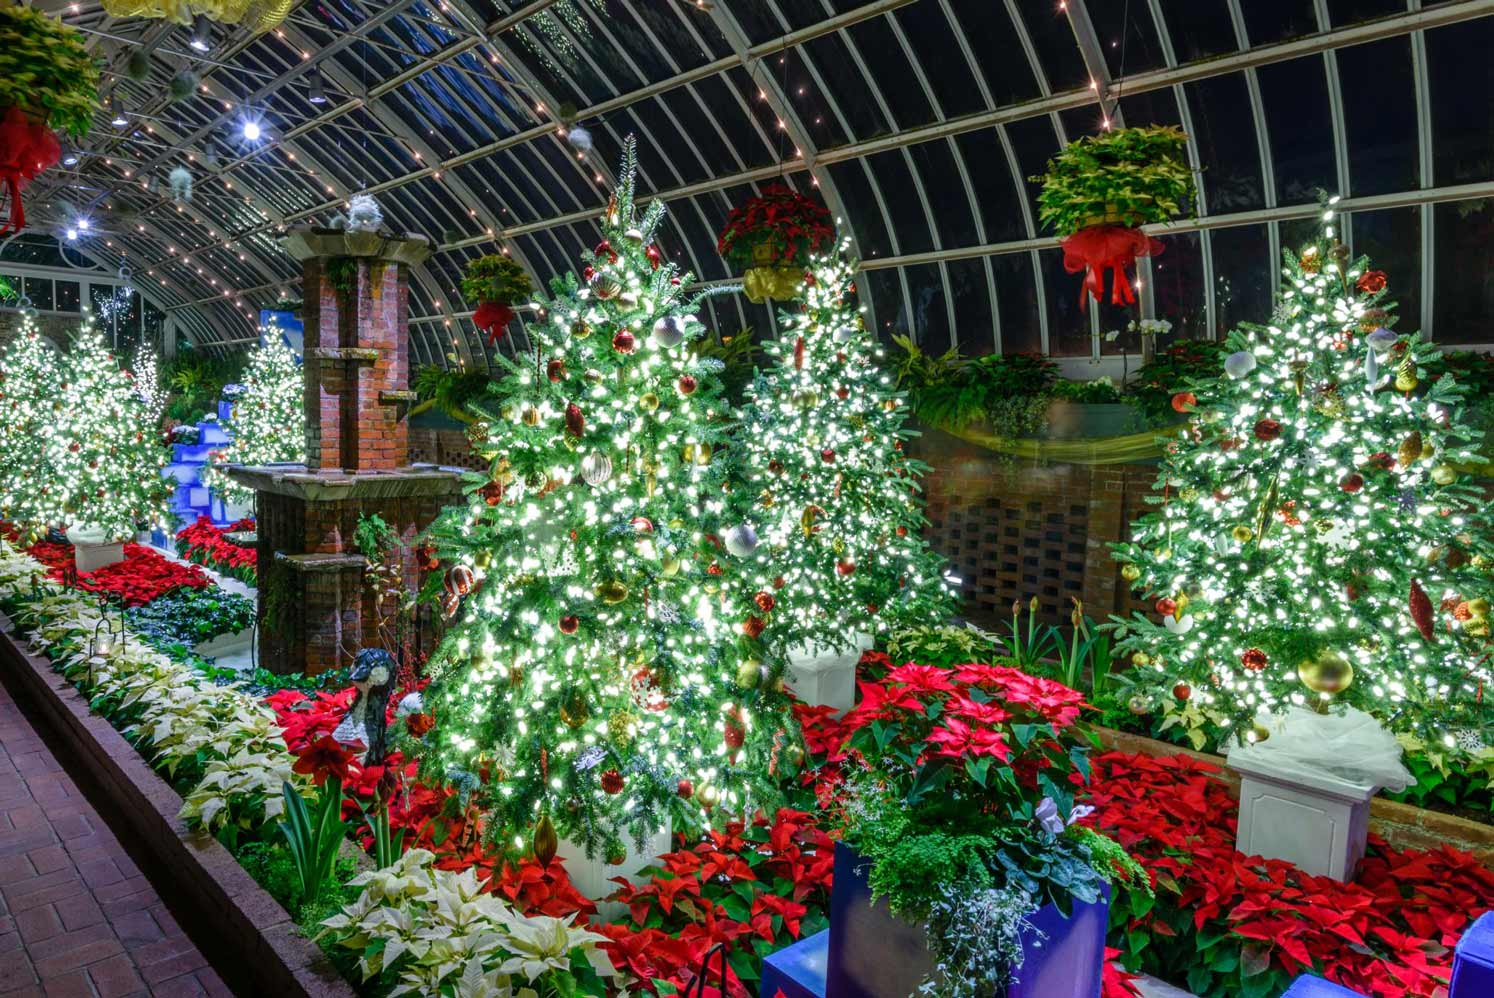 Winter Flower Show And Light Garden: Holiday Magic